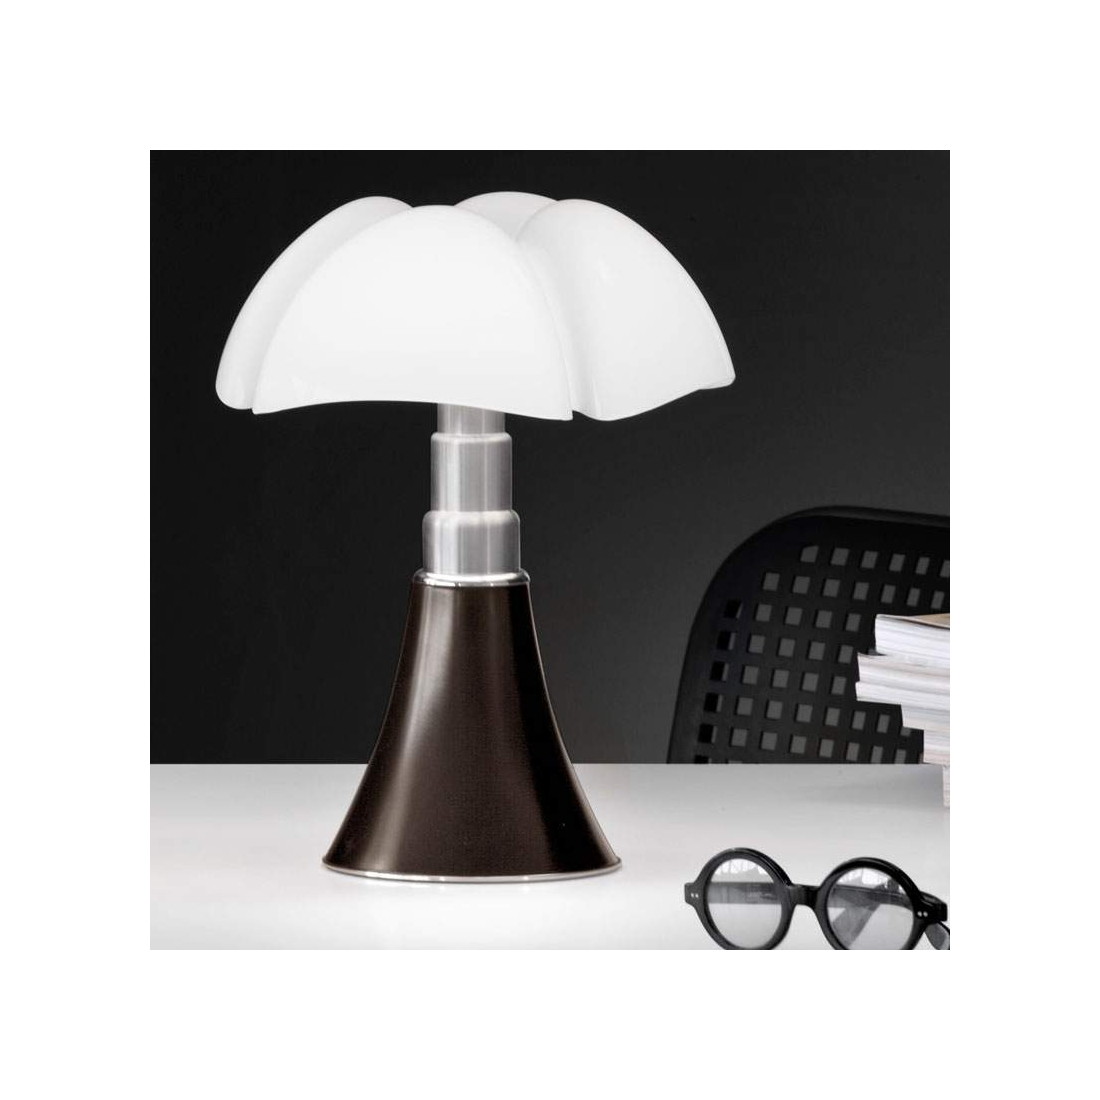 luminaire alinea lampadaire lampe chevet alinea lampes de chevet lampe a poser design with. Black Bedroom Furniture Sets. Home Design Ideas